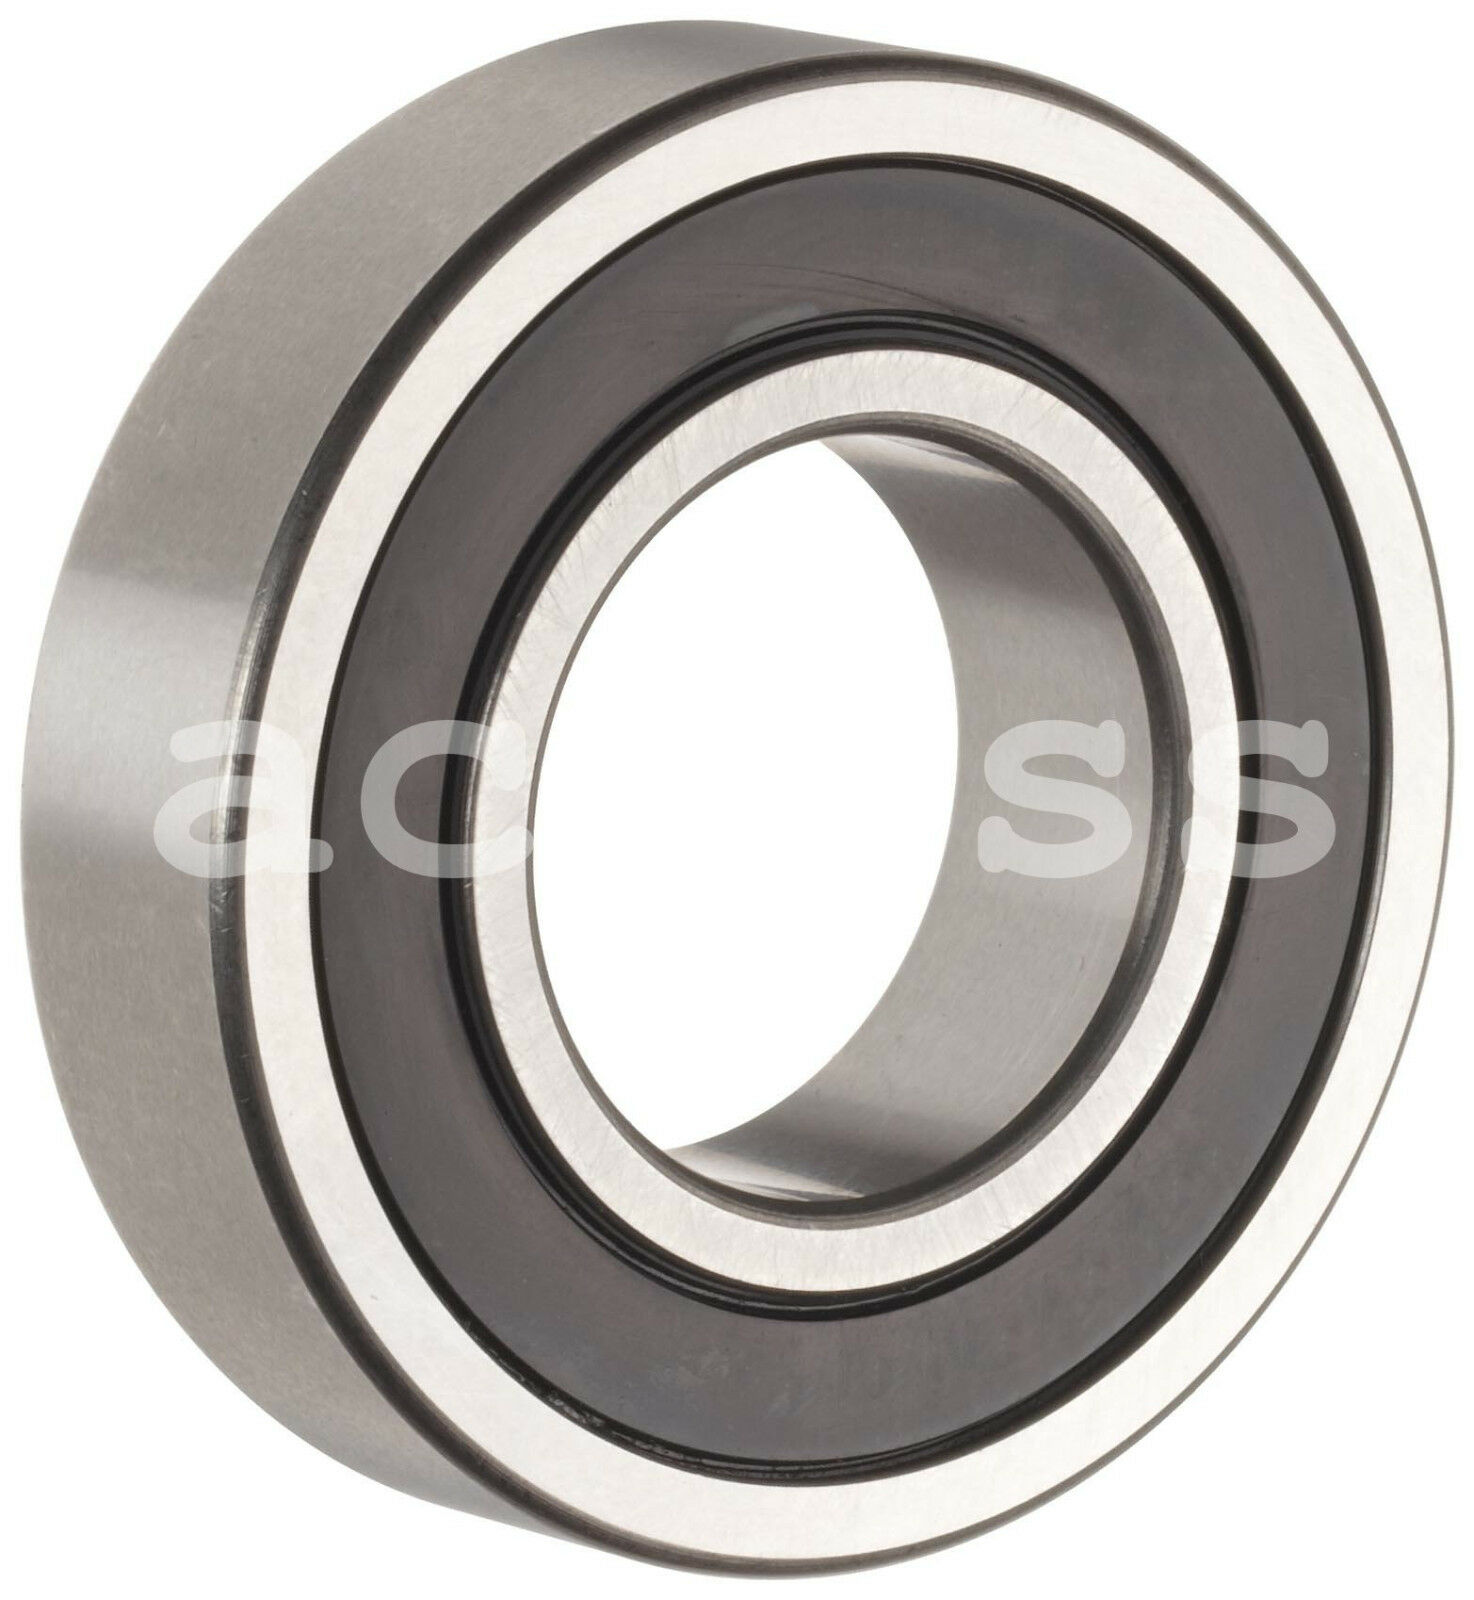 1635-2RS 3 4 X 1-3 4 X 1 2 SEALED BEARING 20 PCS FACTORY NEW SHIPS FROM THE USA